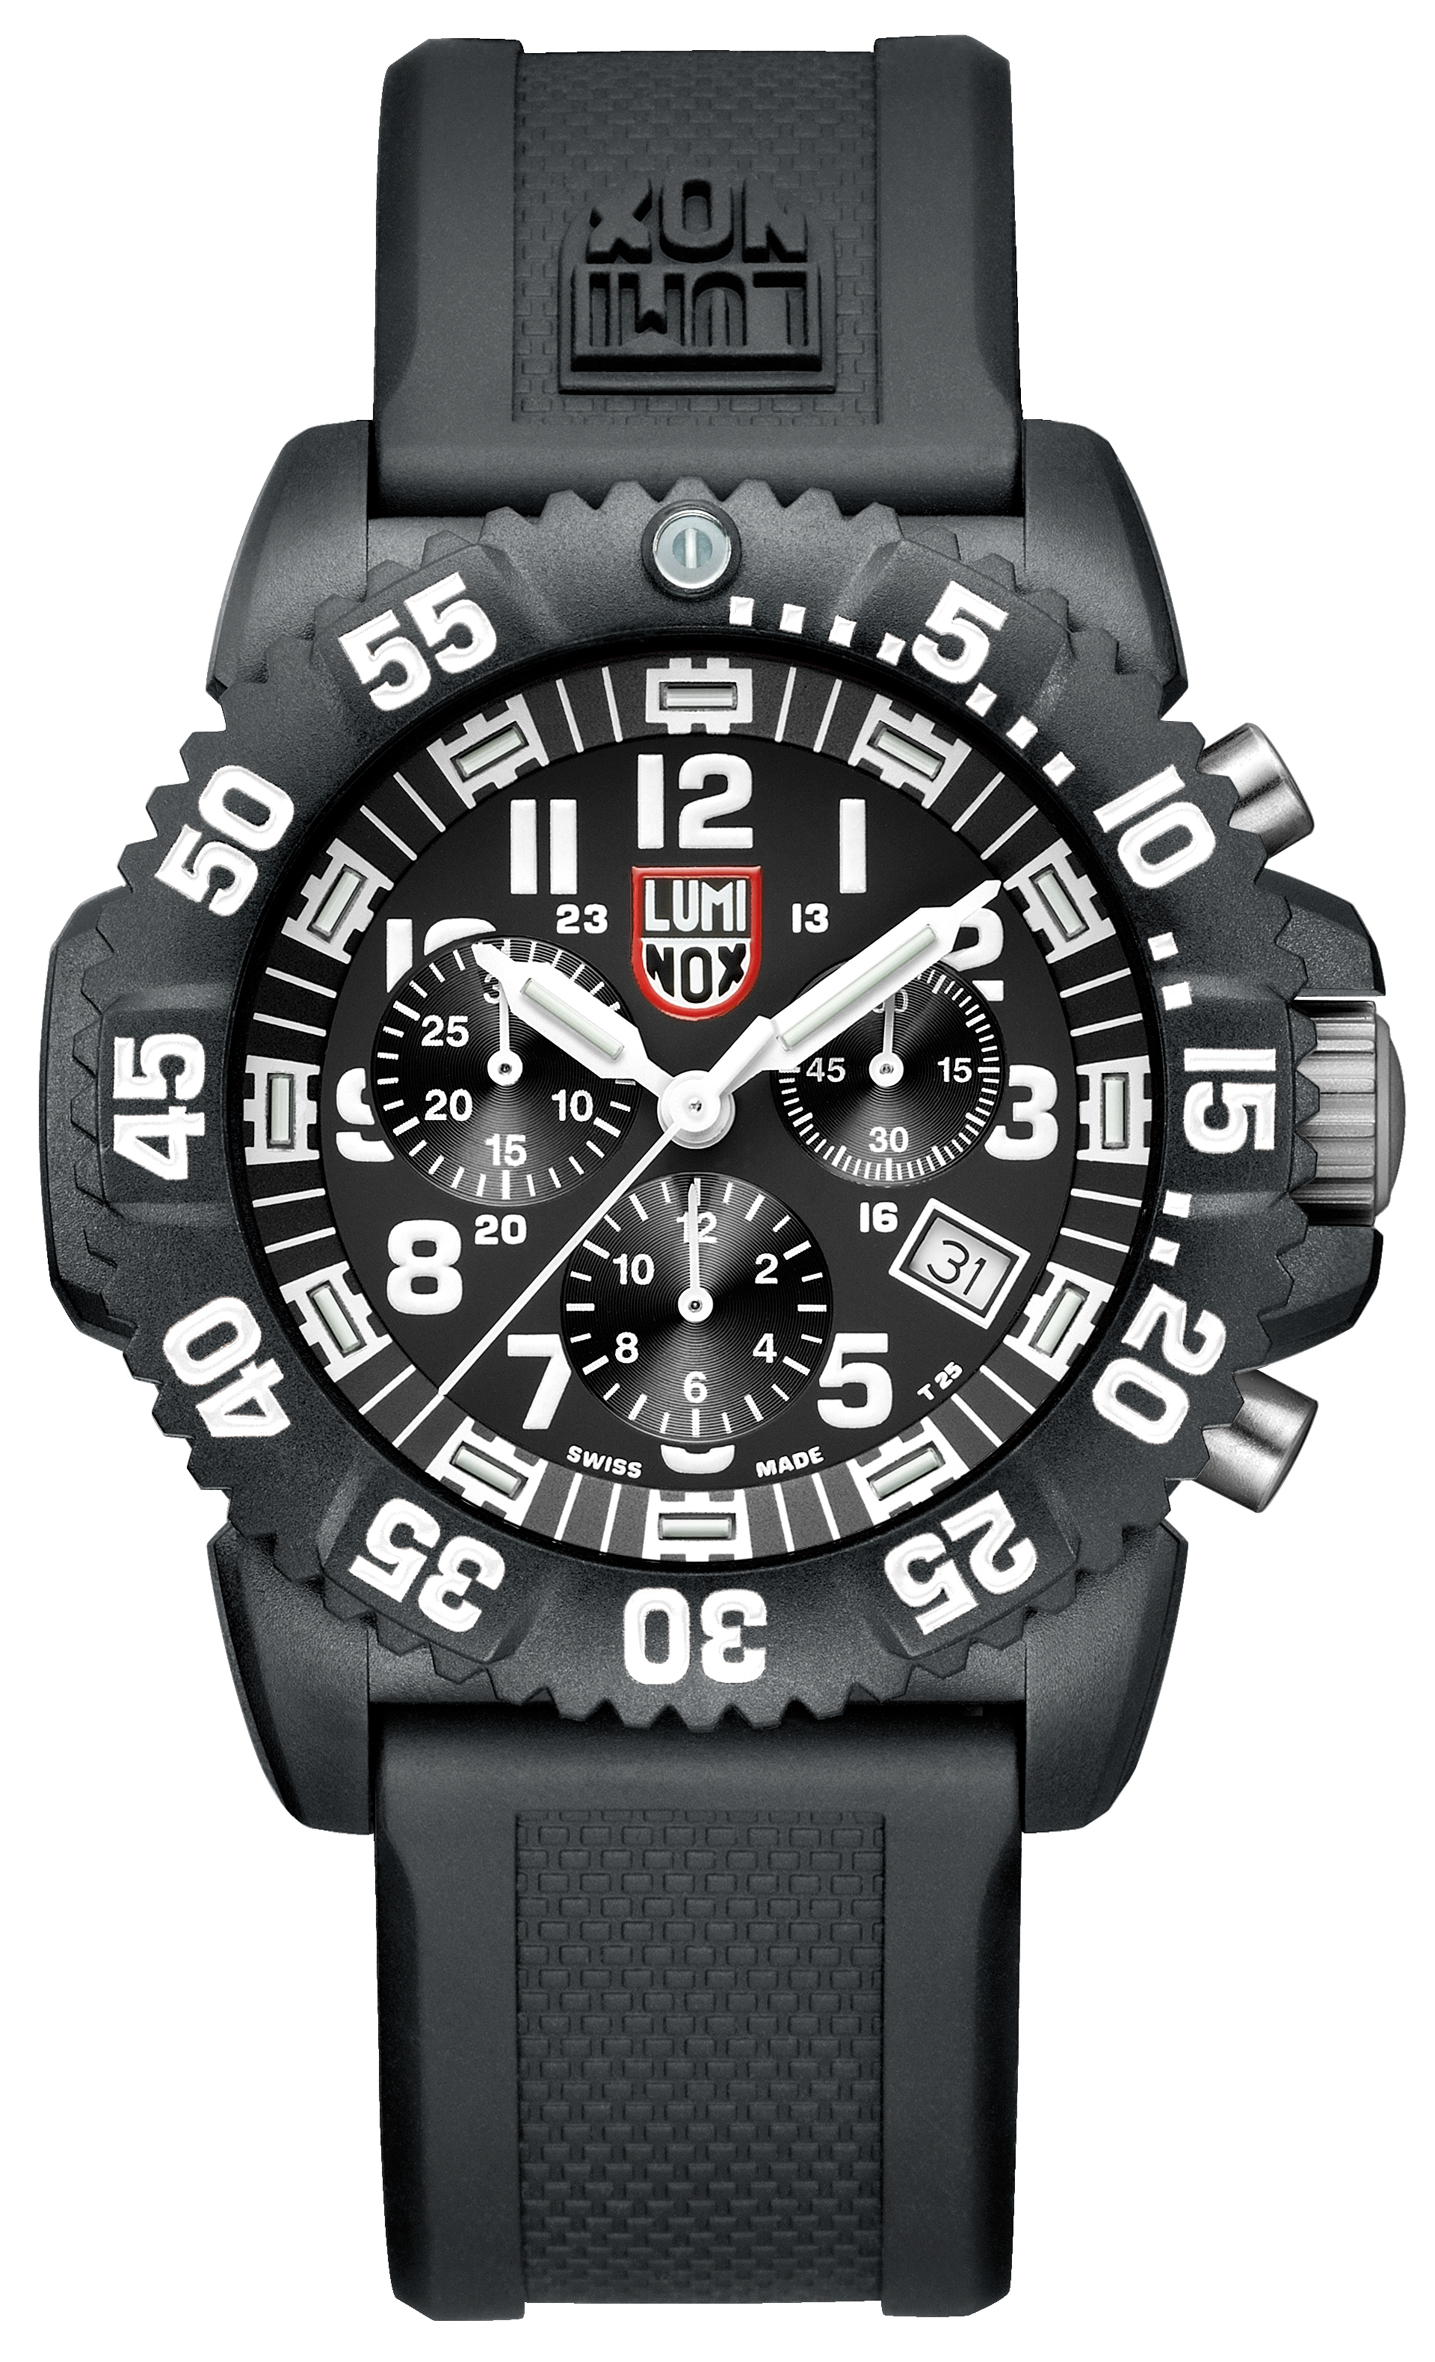 XS.3081 Colormark Chronograph 3080 Serie 44mm 200M